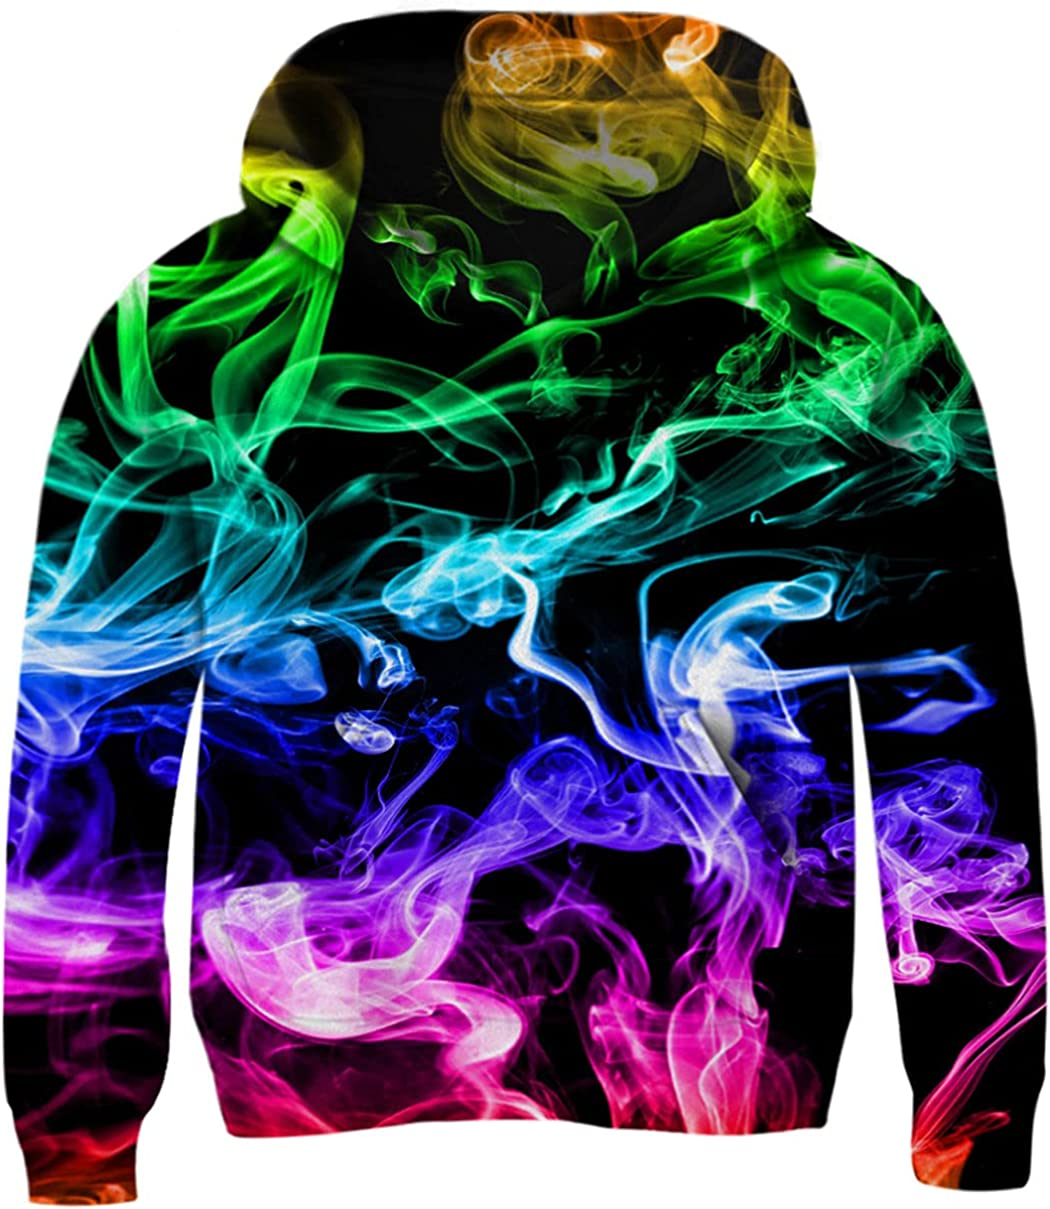 Special sale item TUONROAD 3D Print Kids Rapid rise Pullover Hooded Swea Casual Hoodies Teens